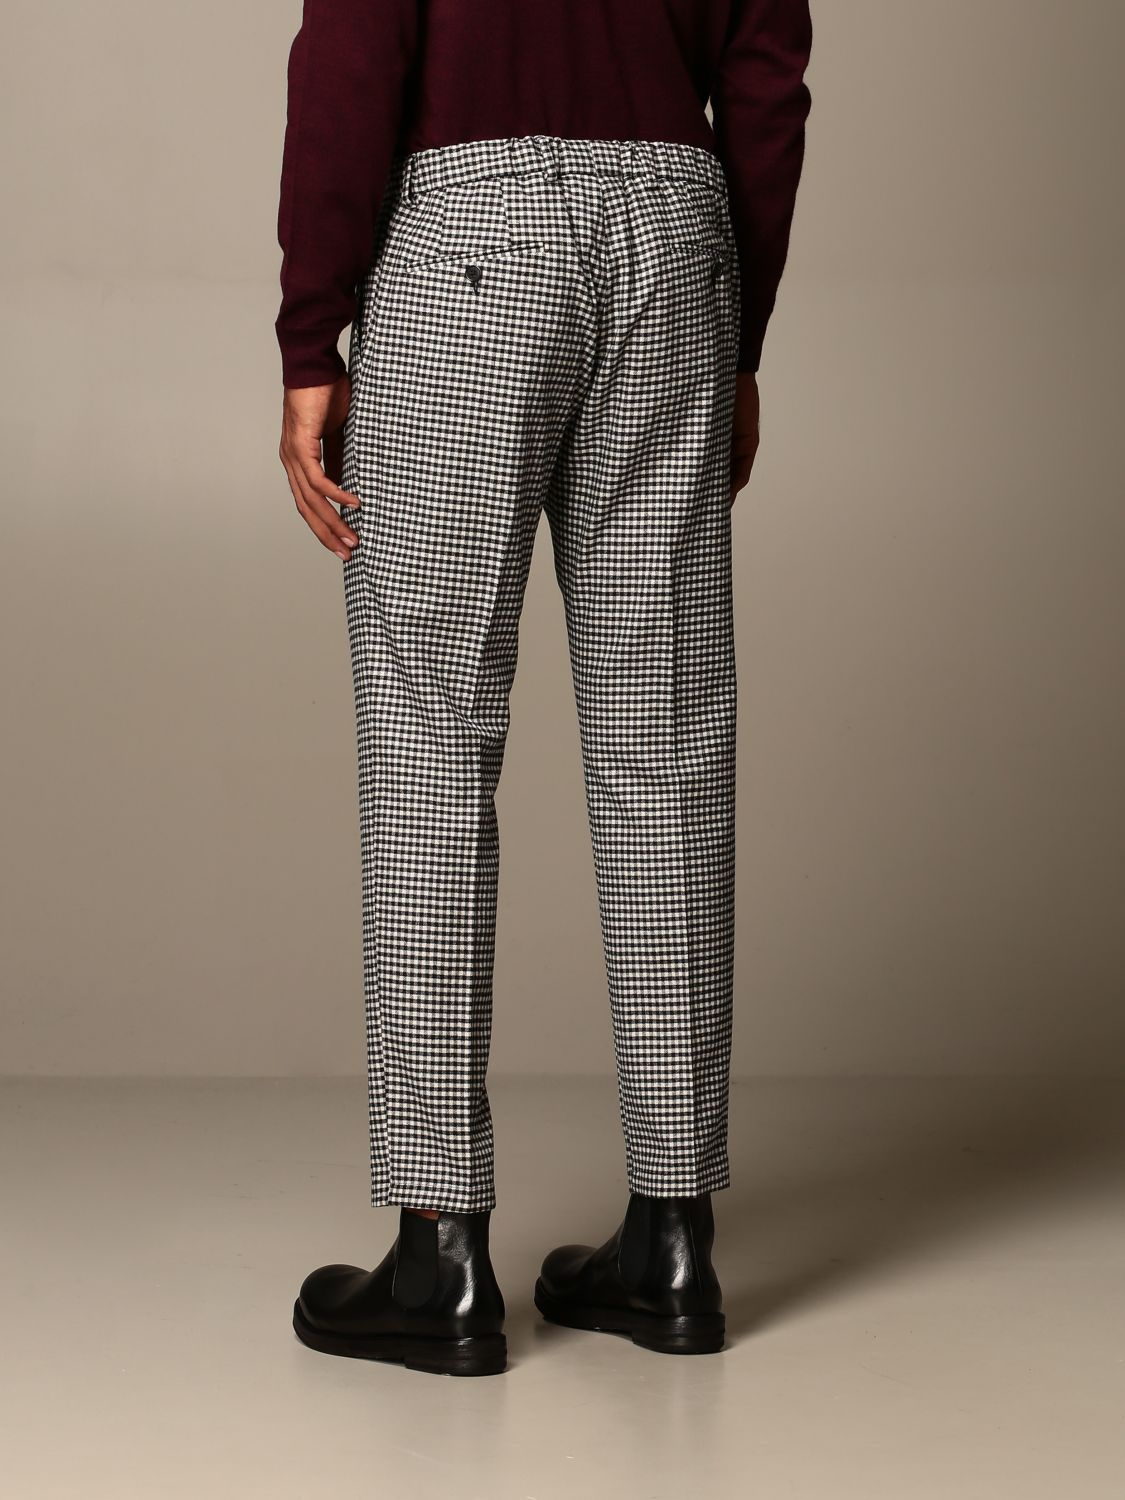 Pantalone Be Able: Pantalone Be Able con coulisse in lana e cotone fa01 2